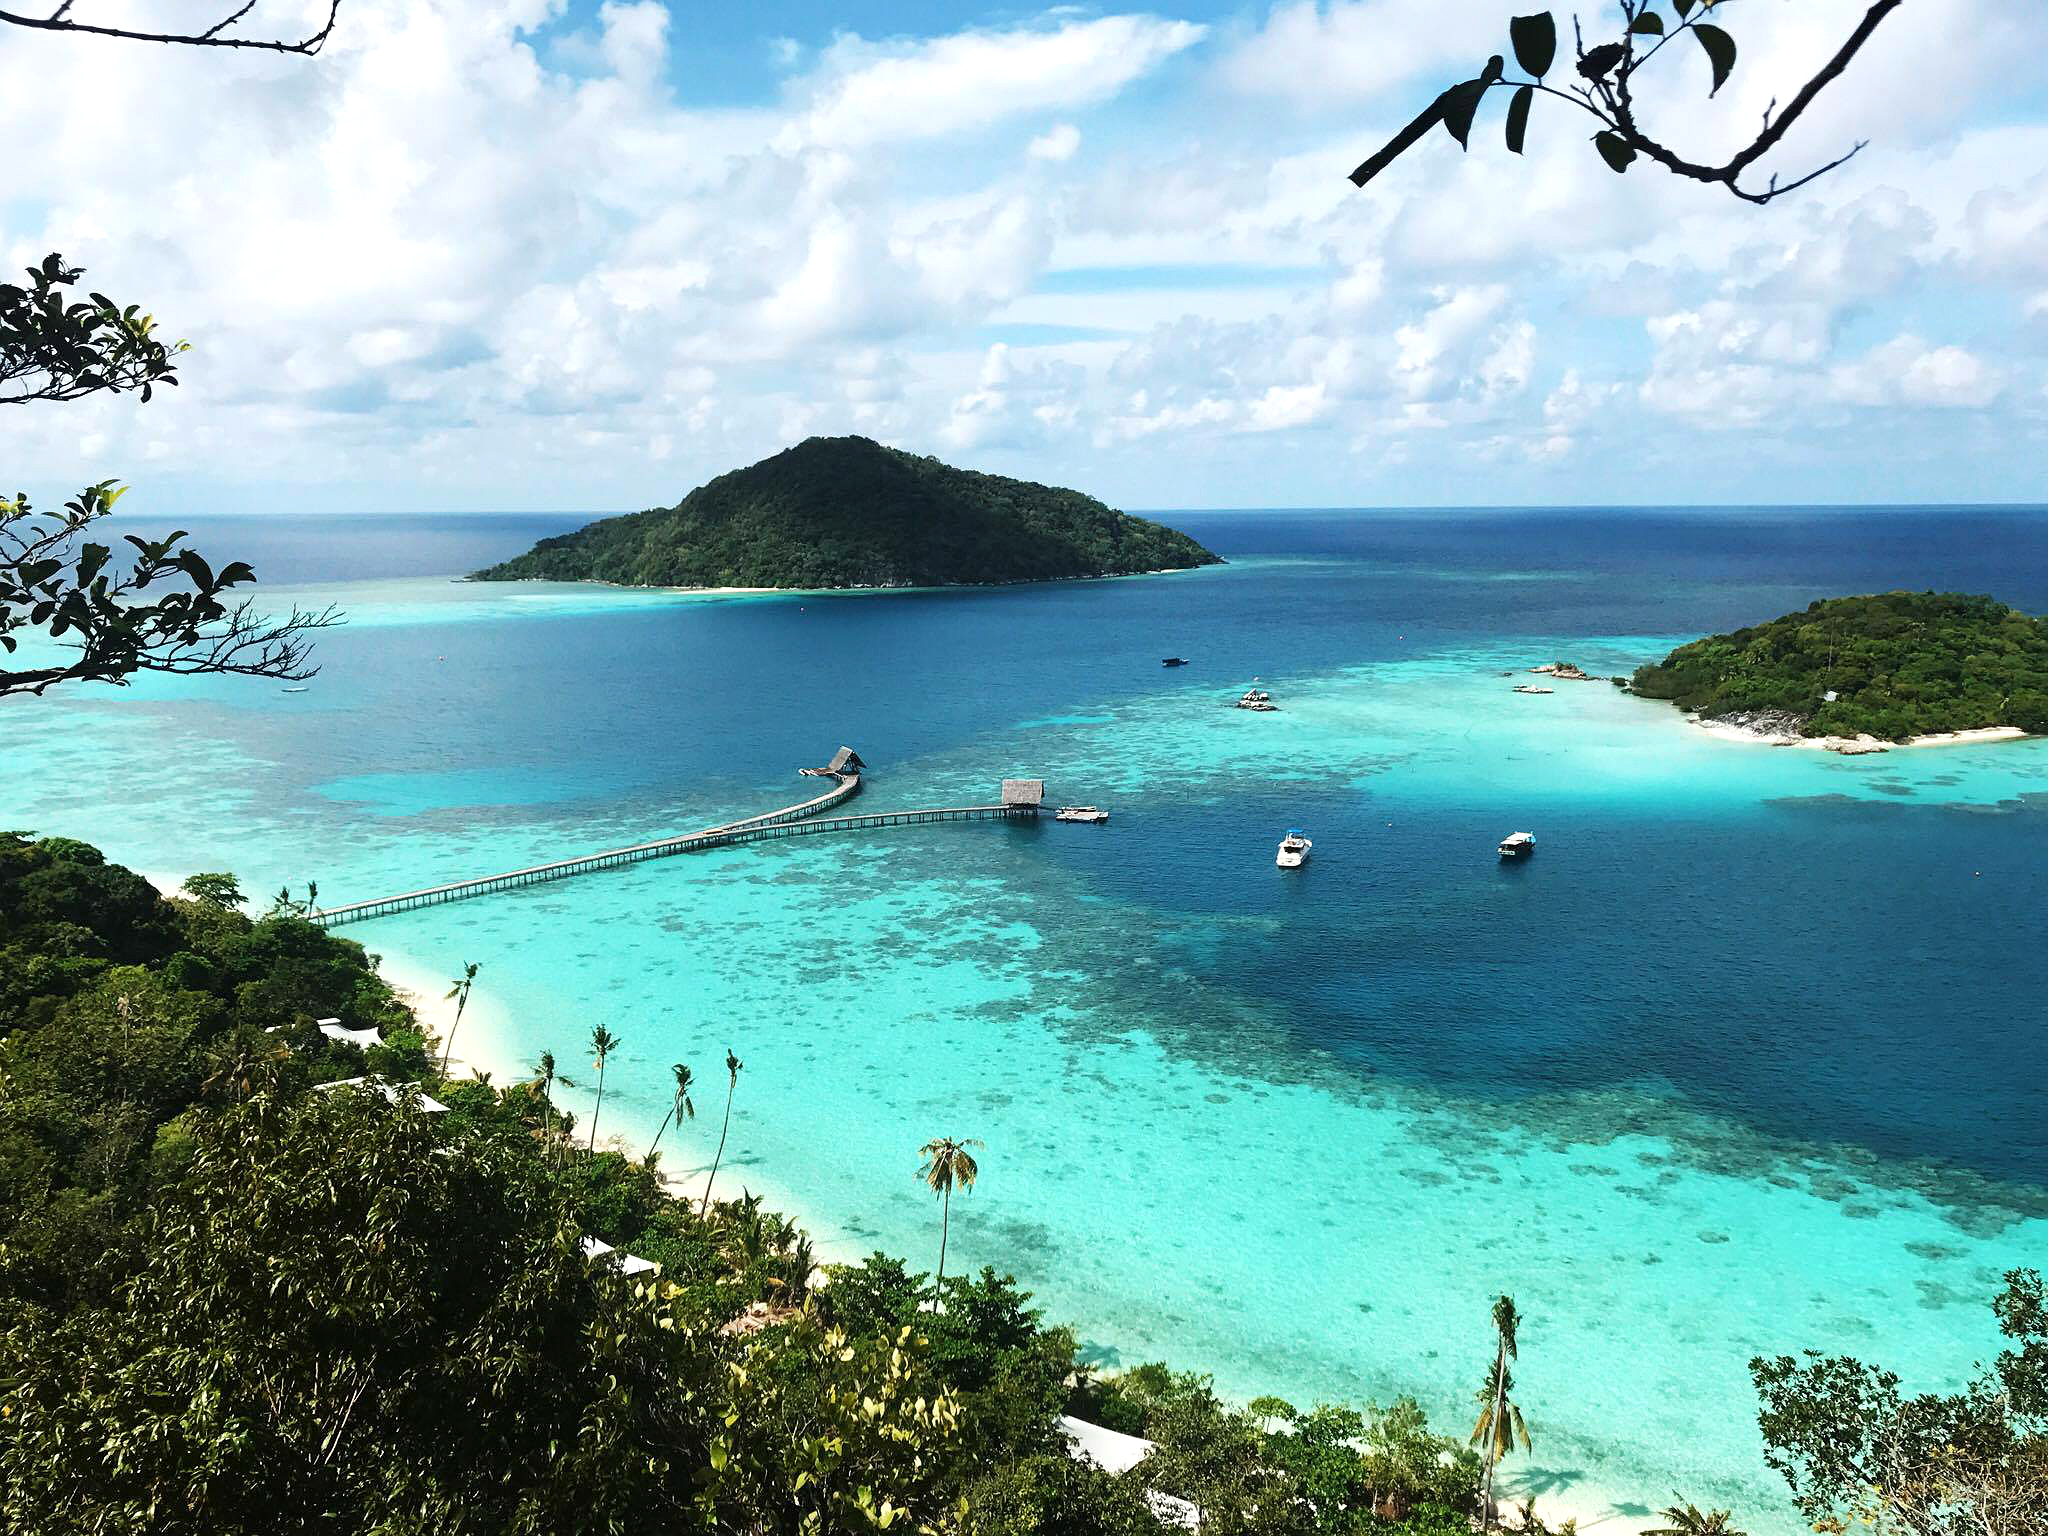 Check in: Bawah Island, an untouched retreat 3 hours from Singapore